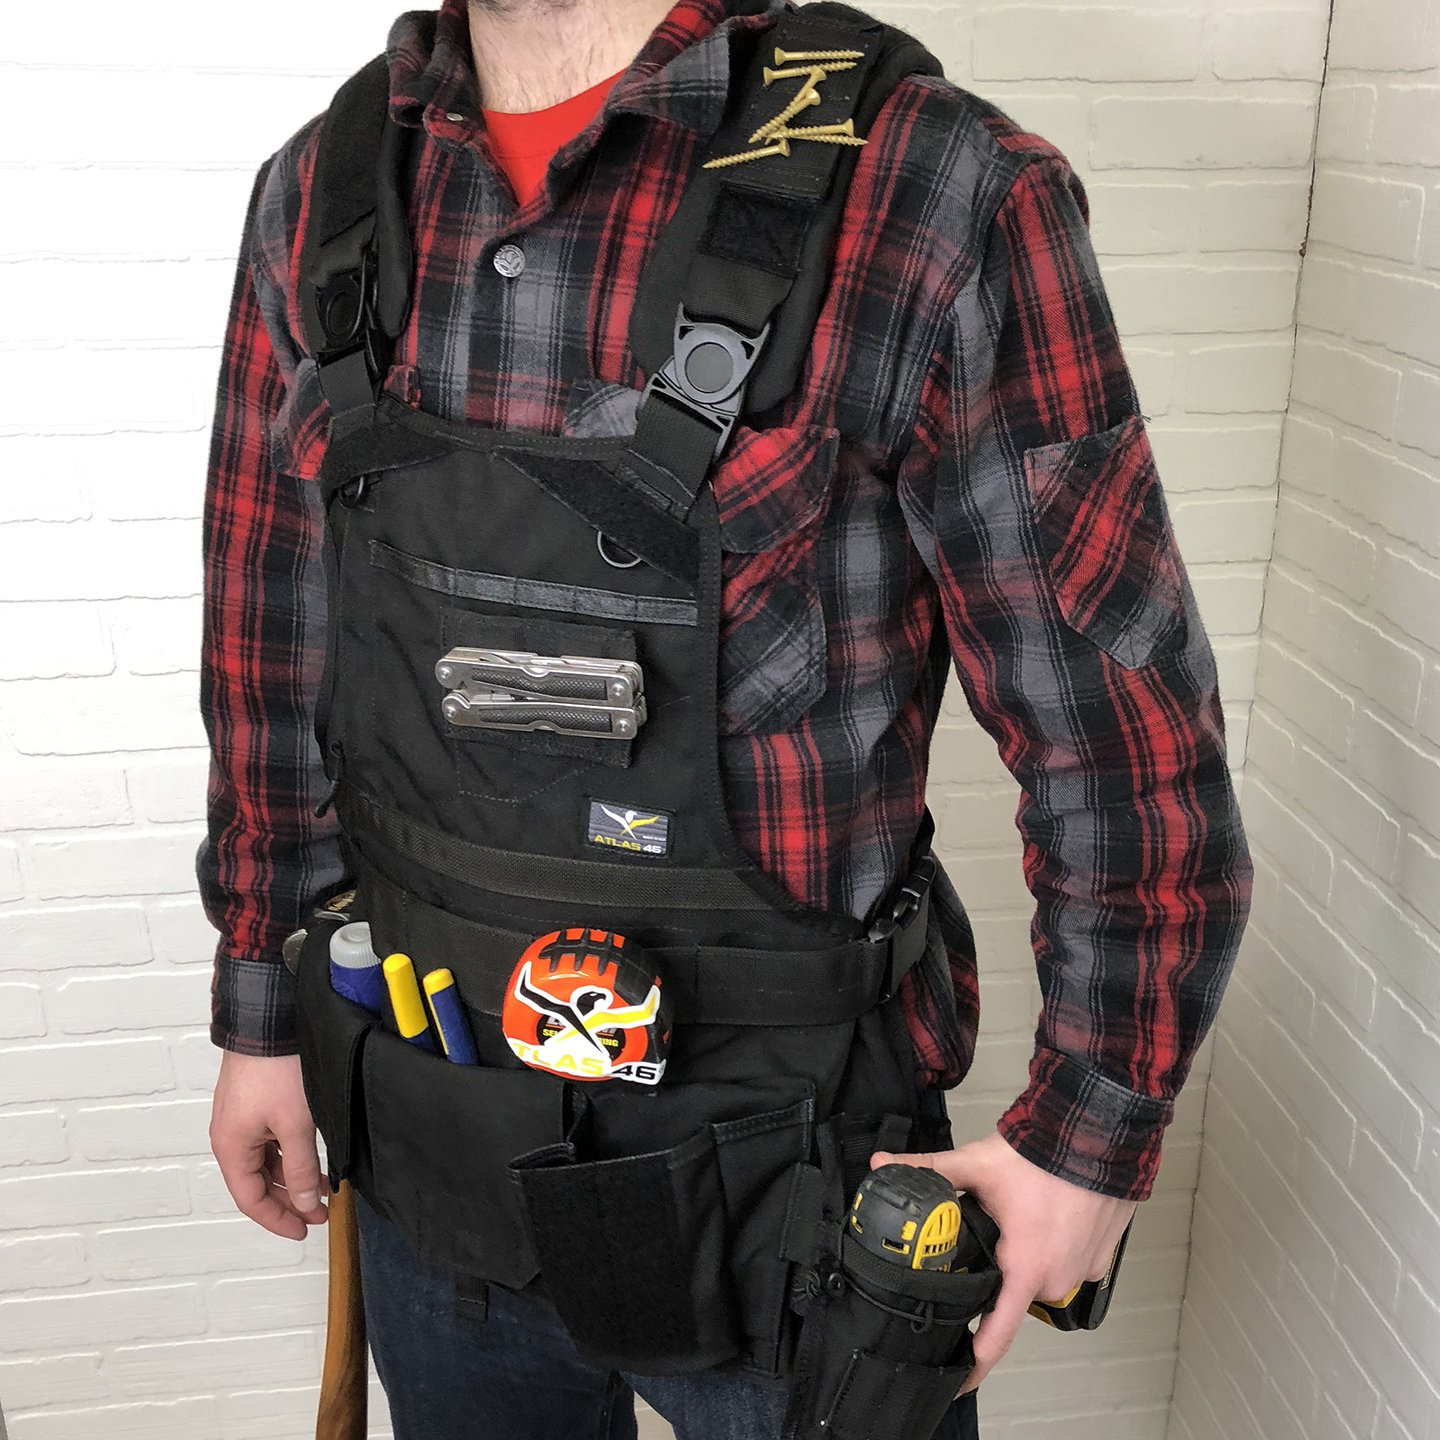 Atlas 46 Journeyman Chest Rig with Cargo Pockets, Black by Atlas 46